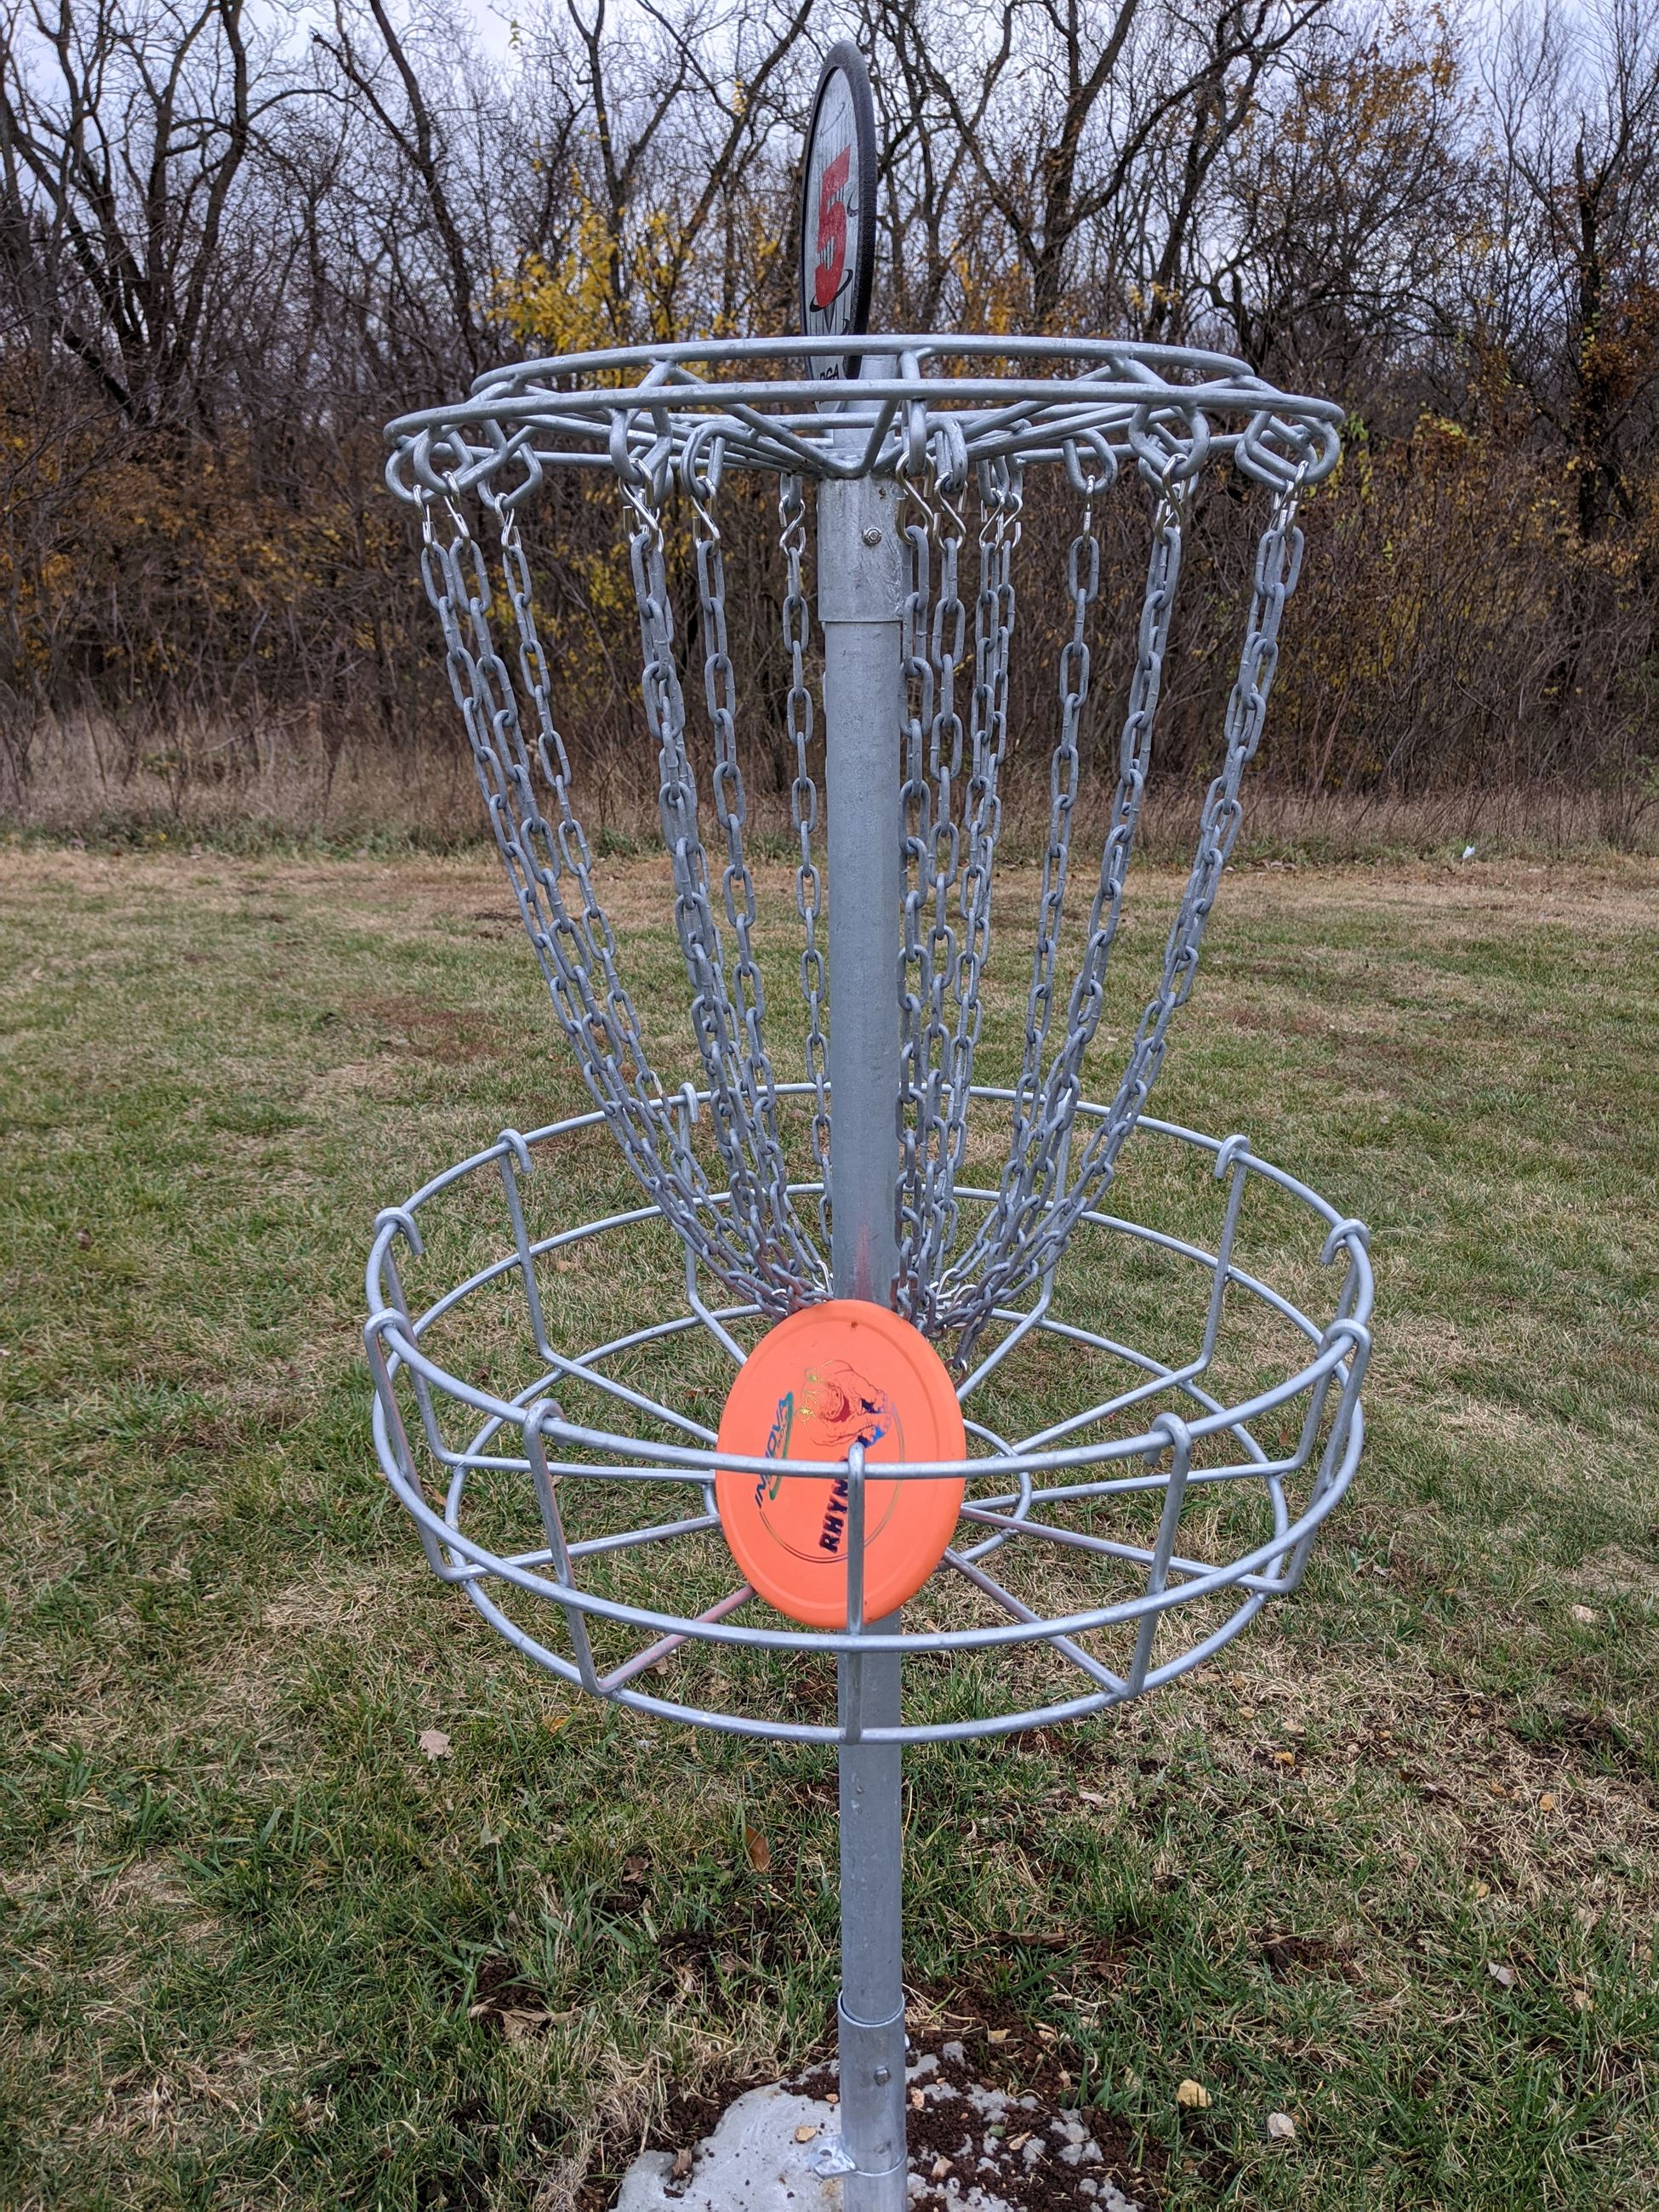 The disc golf course at Lewis-Young Park is ready for play.